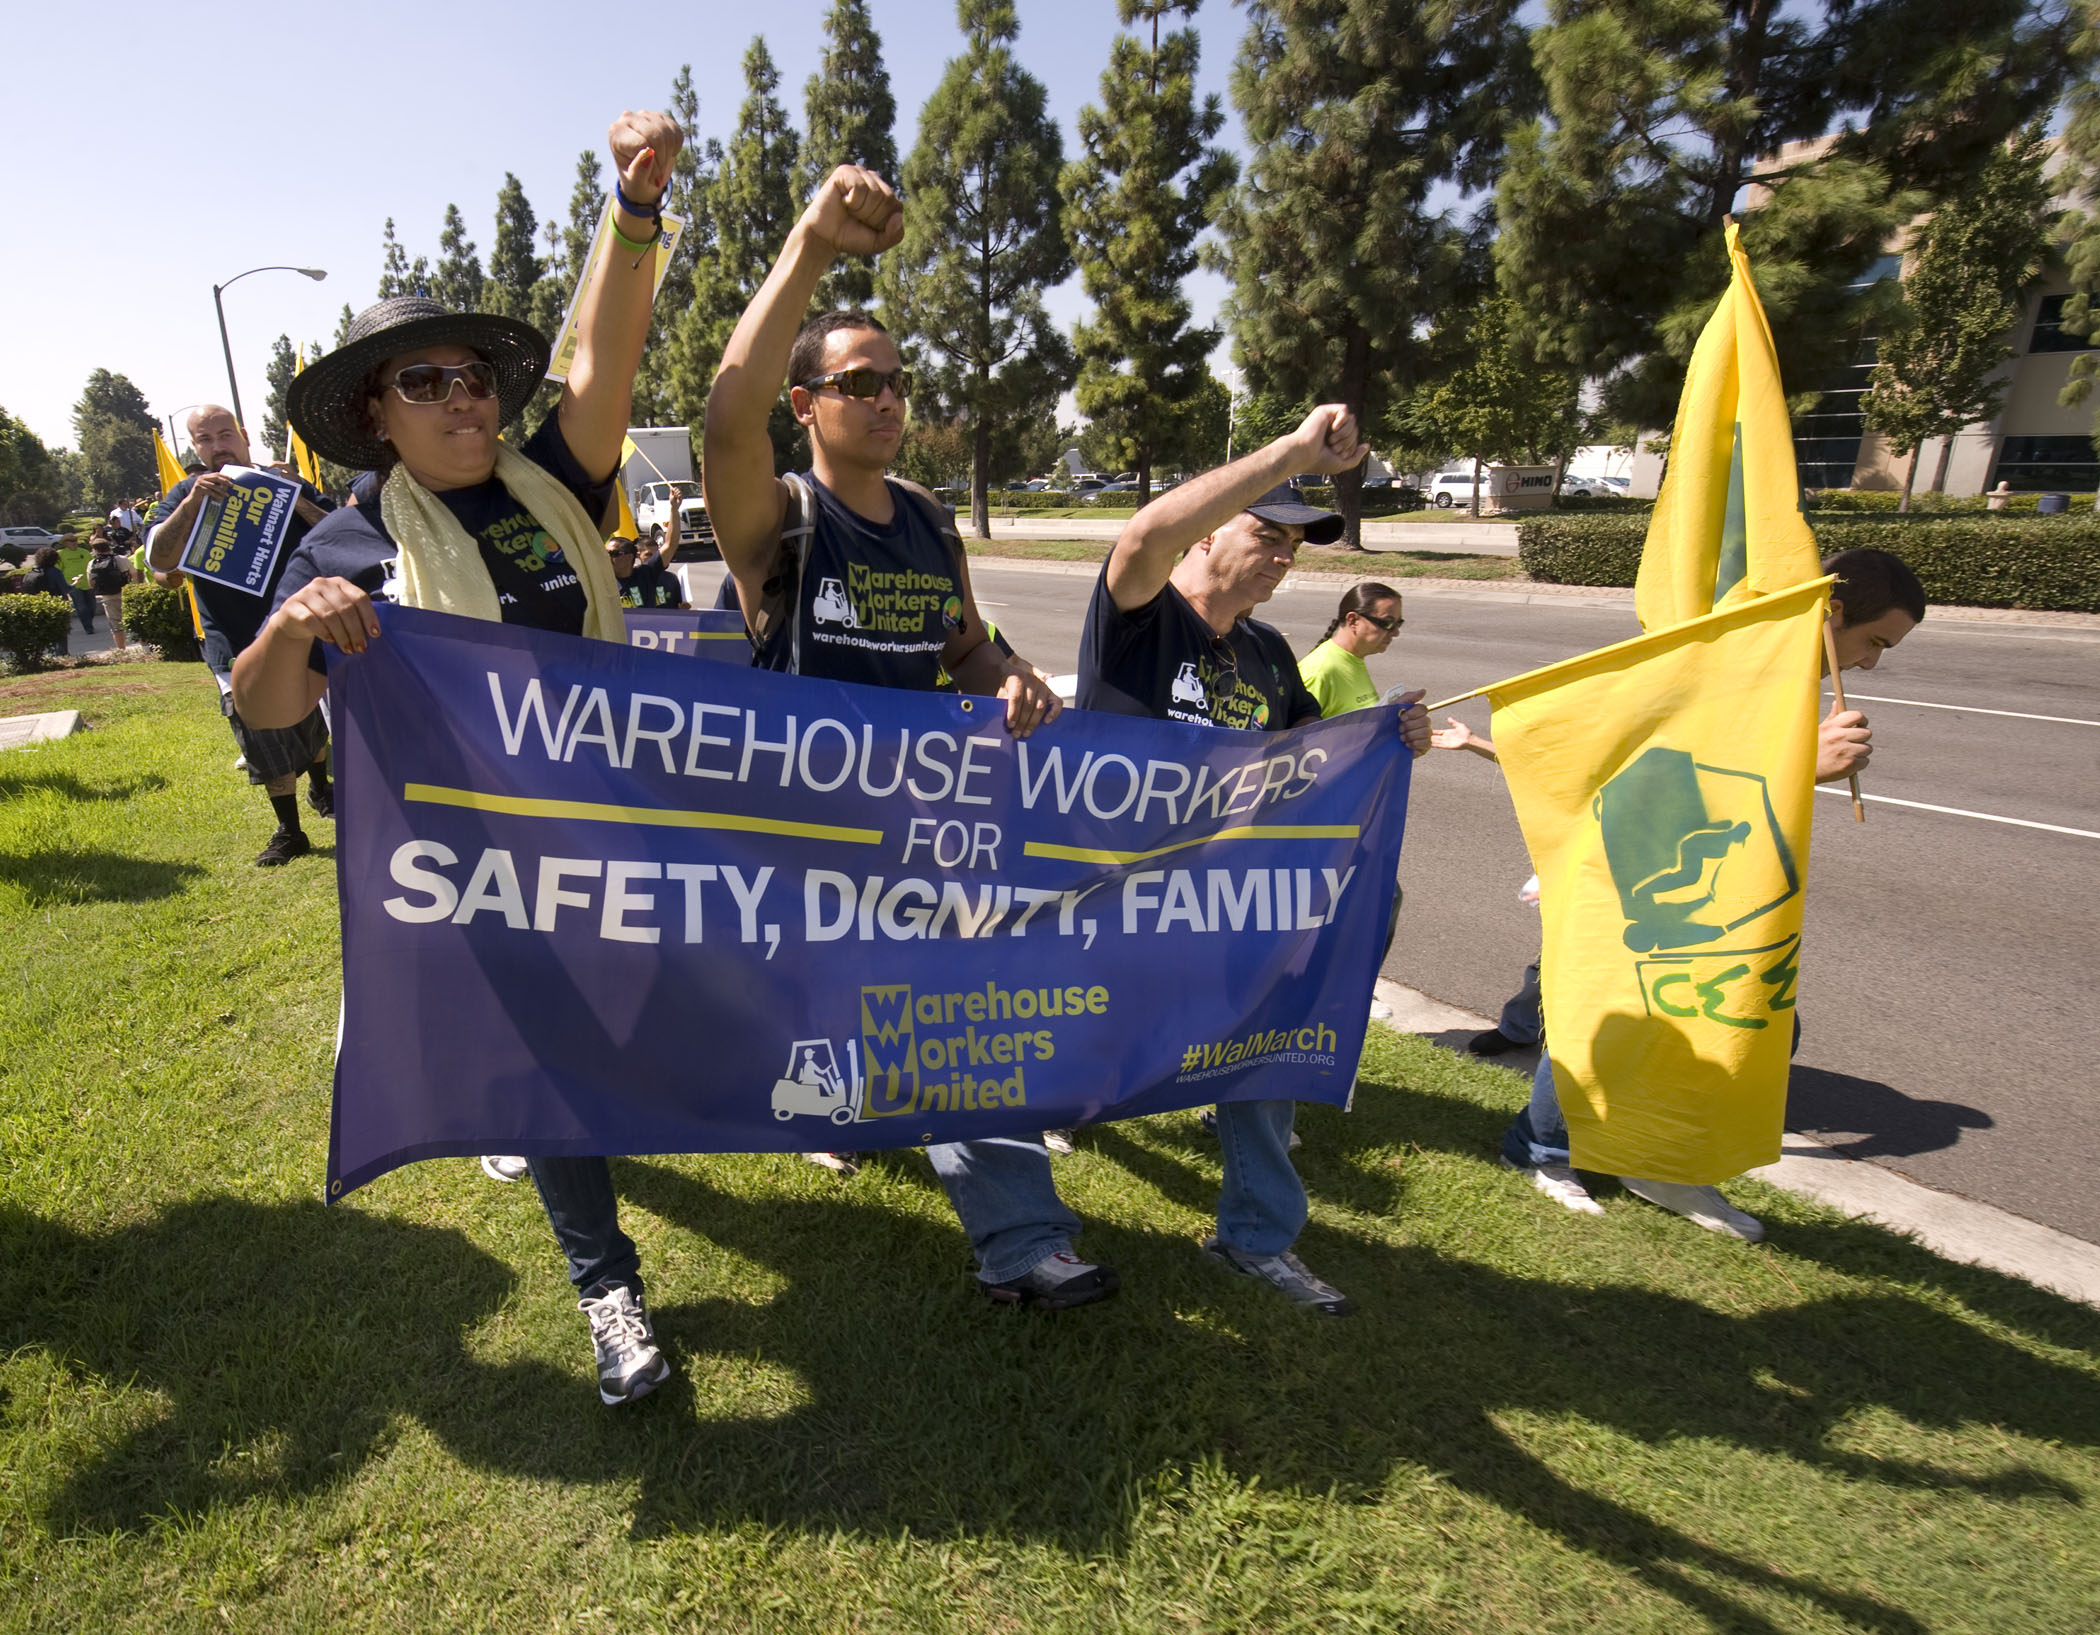 Walmart Warehouse Workers Continue Their March for Safer Work Conditions